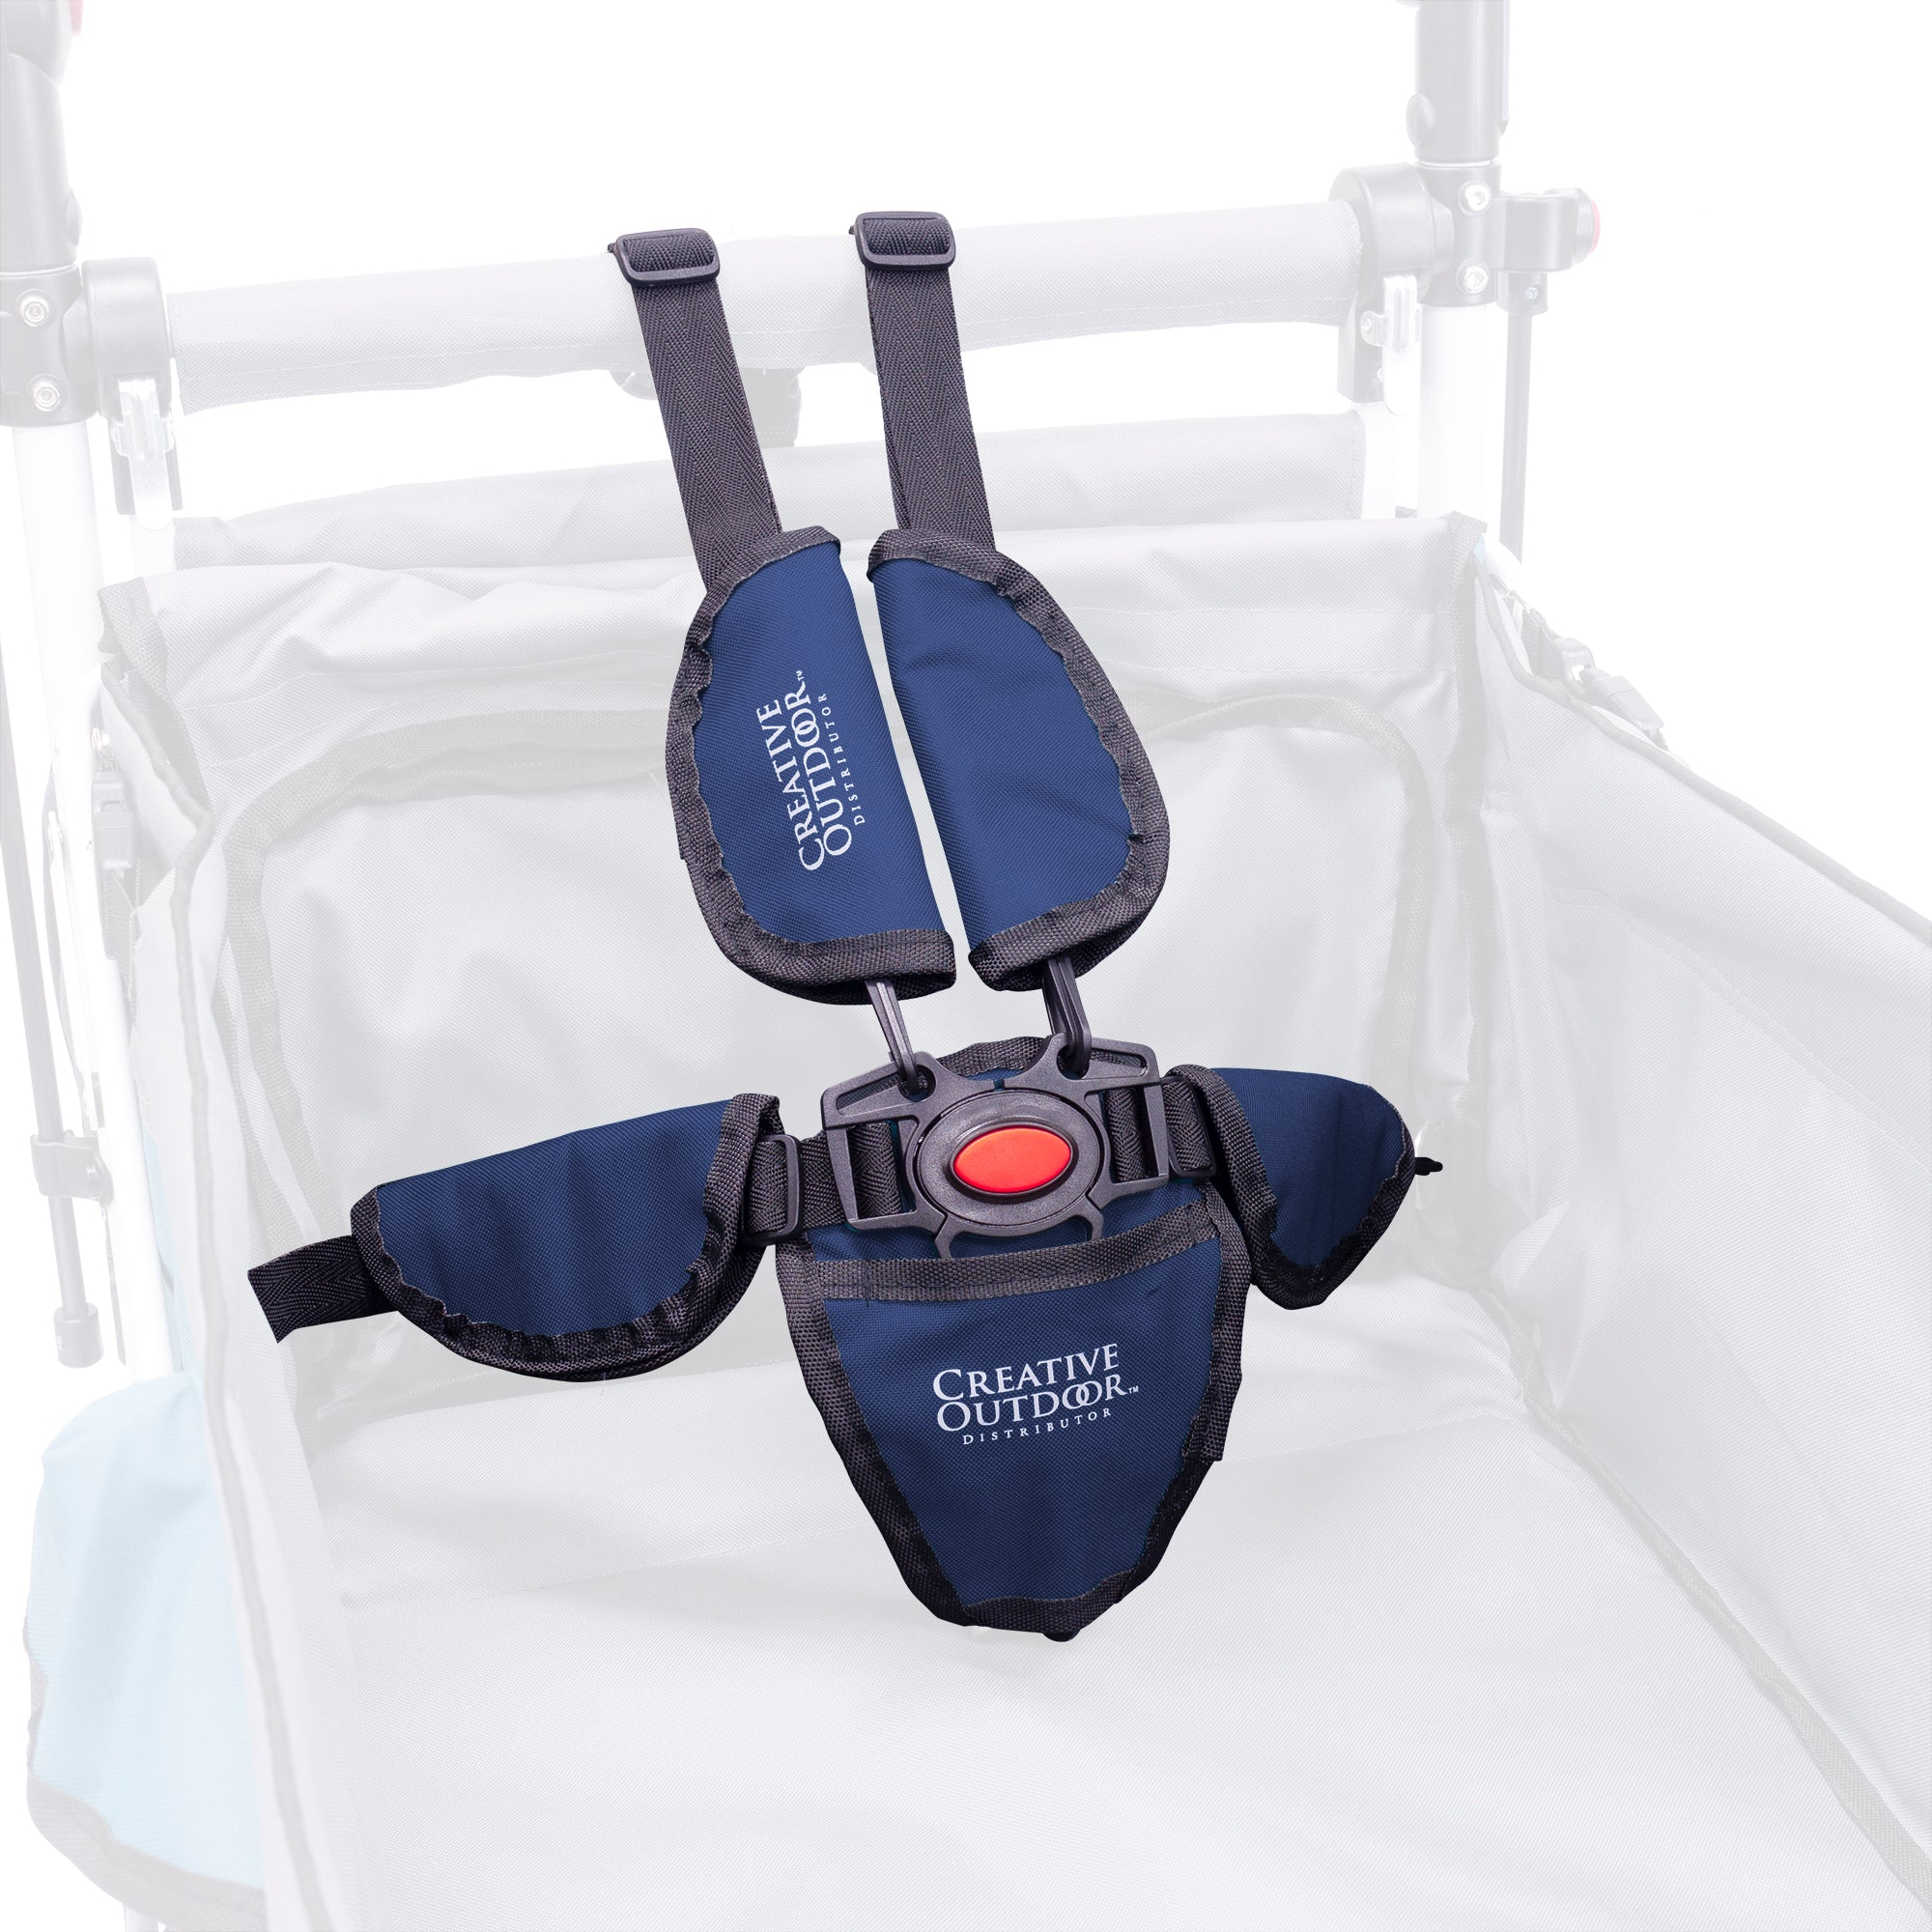 Push Pull Titanium Series 5-Point Safety Harness Seatbelt - Navy